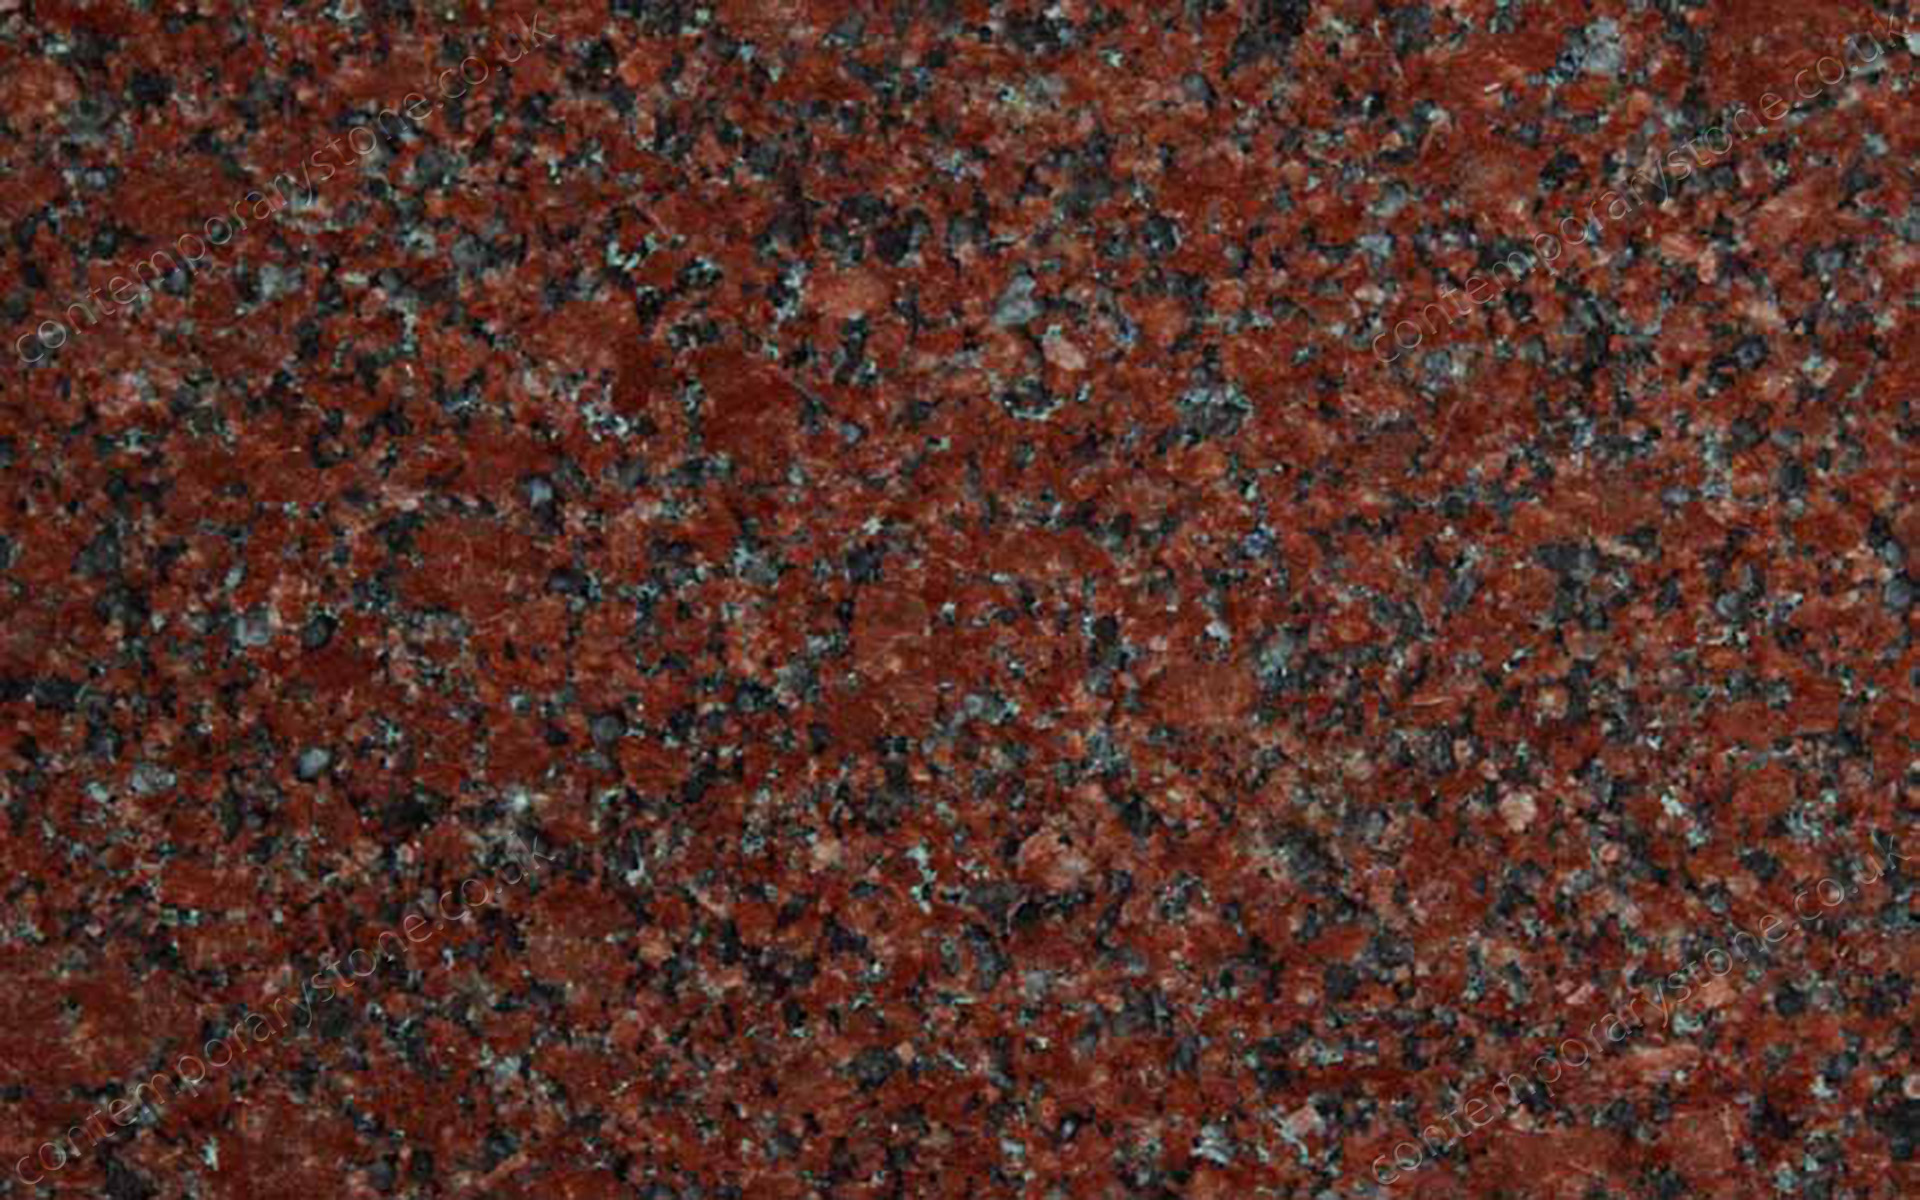 New Imperial Red granite close-up